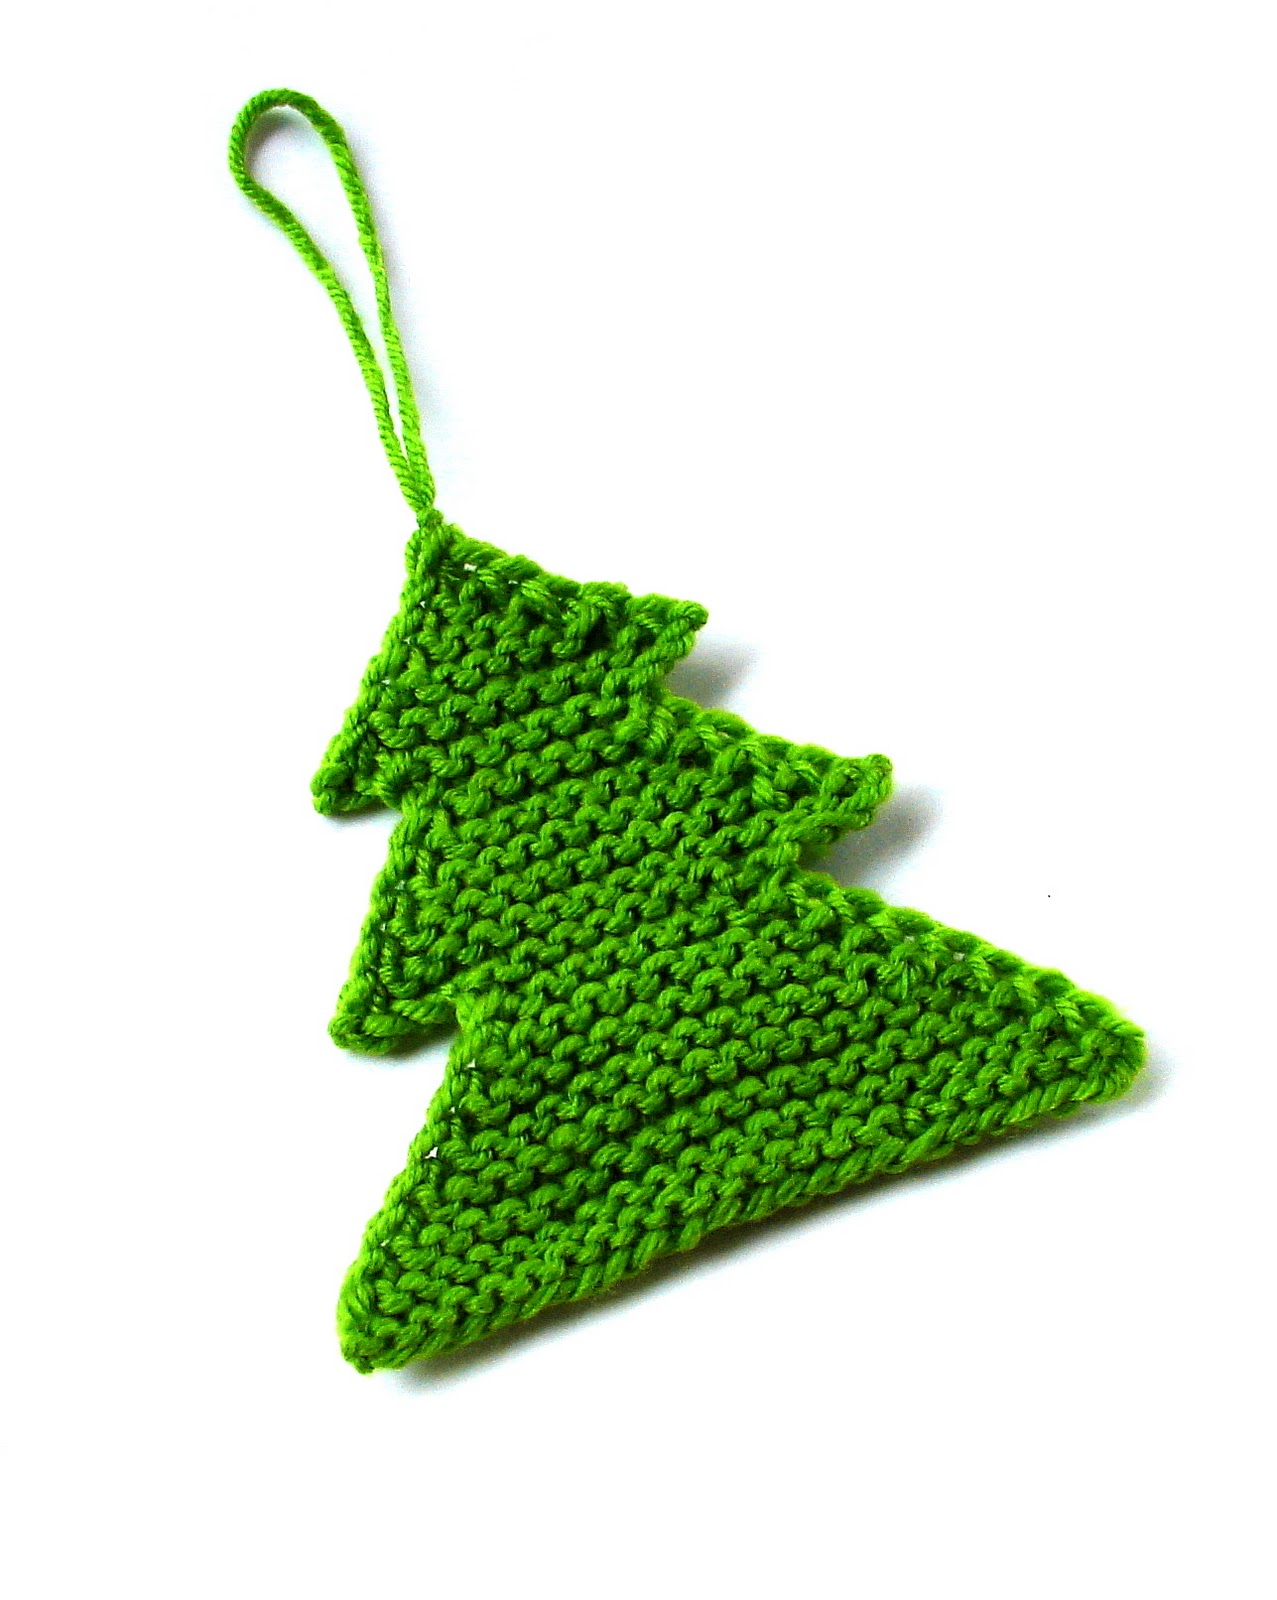 Ferbys Corner Knitting: Christmas Is Coming To Town